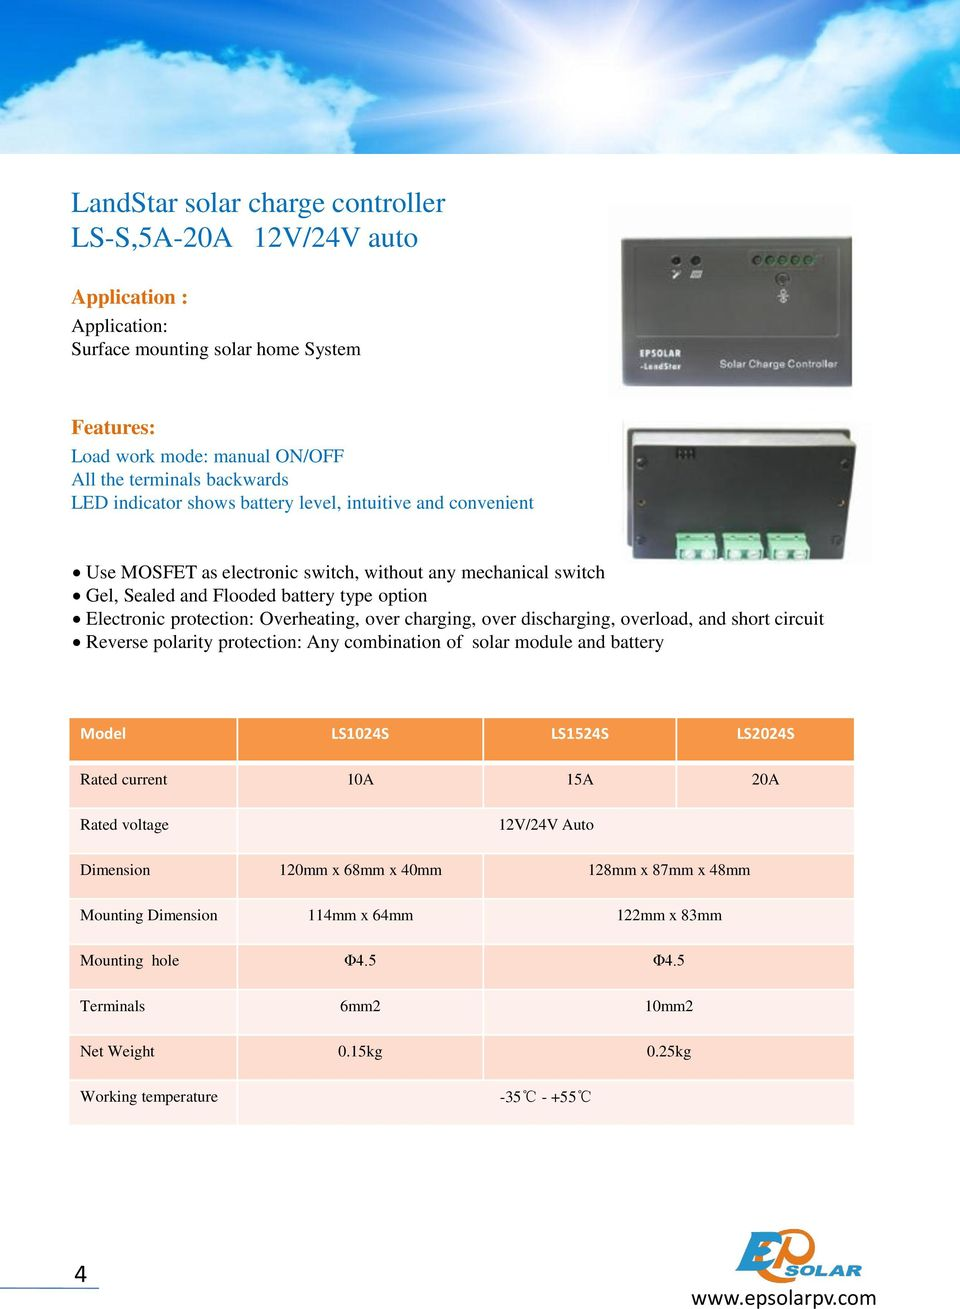 protection: Overheating, over charging, over discharging, overload, and short circuit Reverse polarity protection: Any combination of solar module and battery Model LS1024S